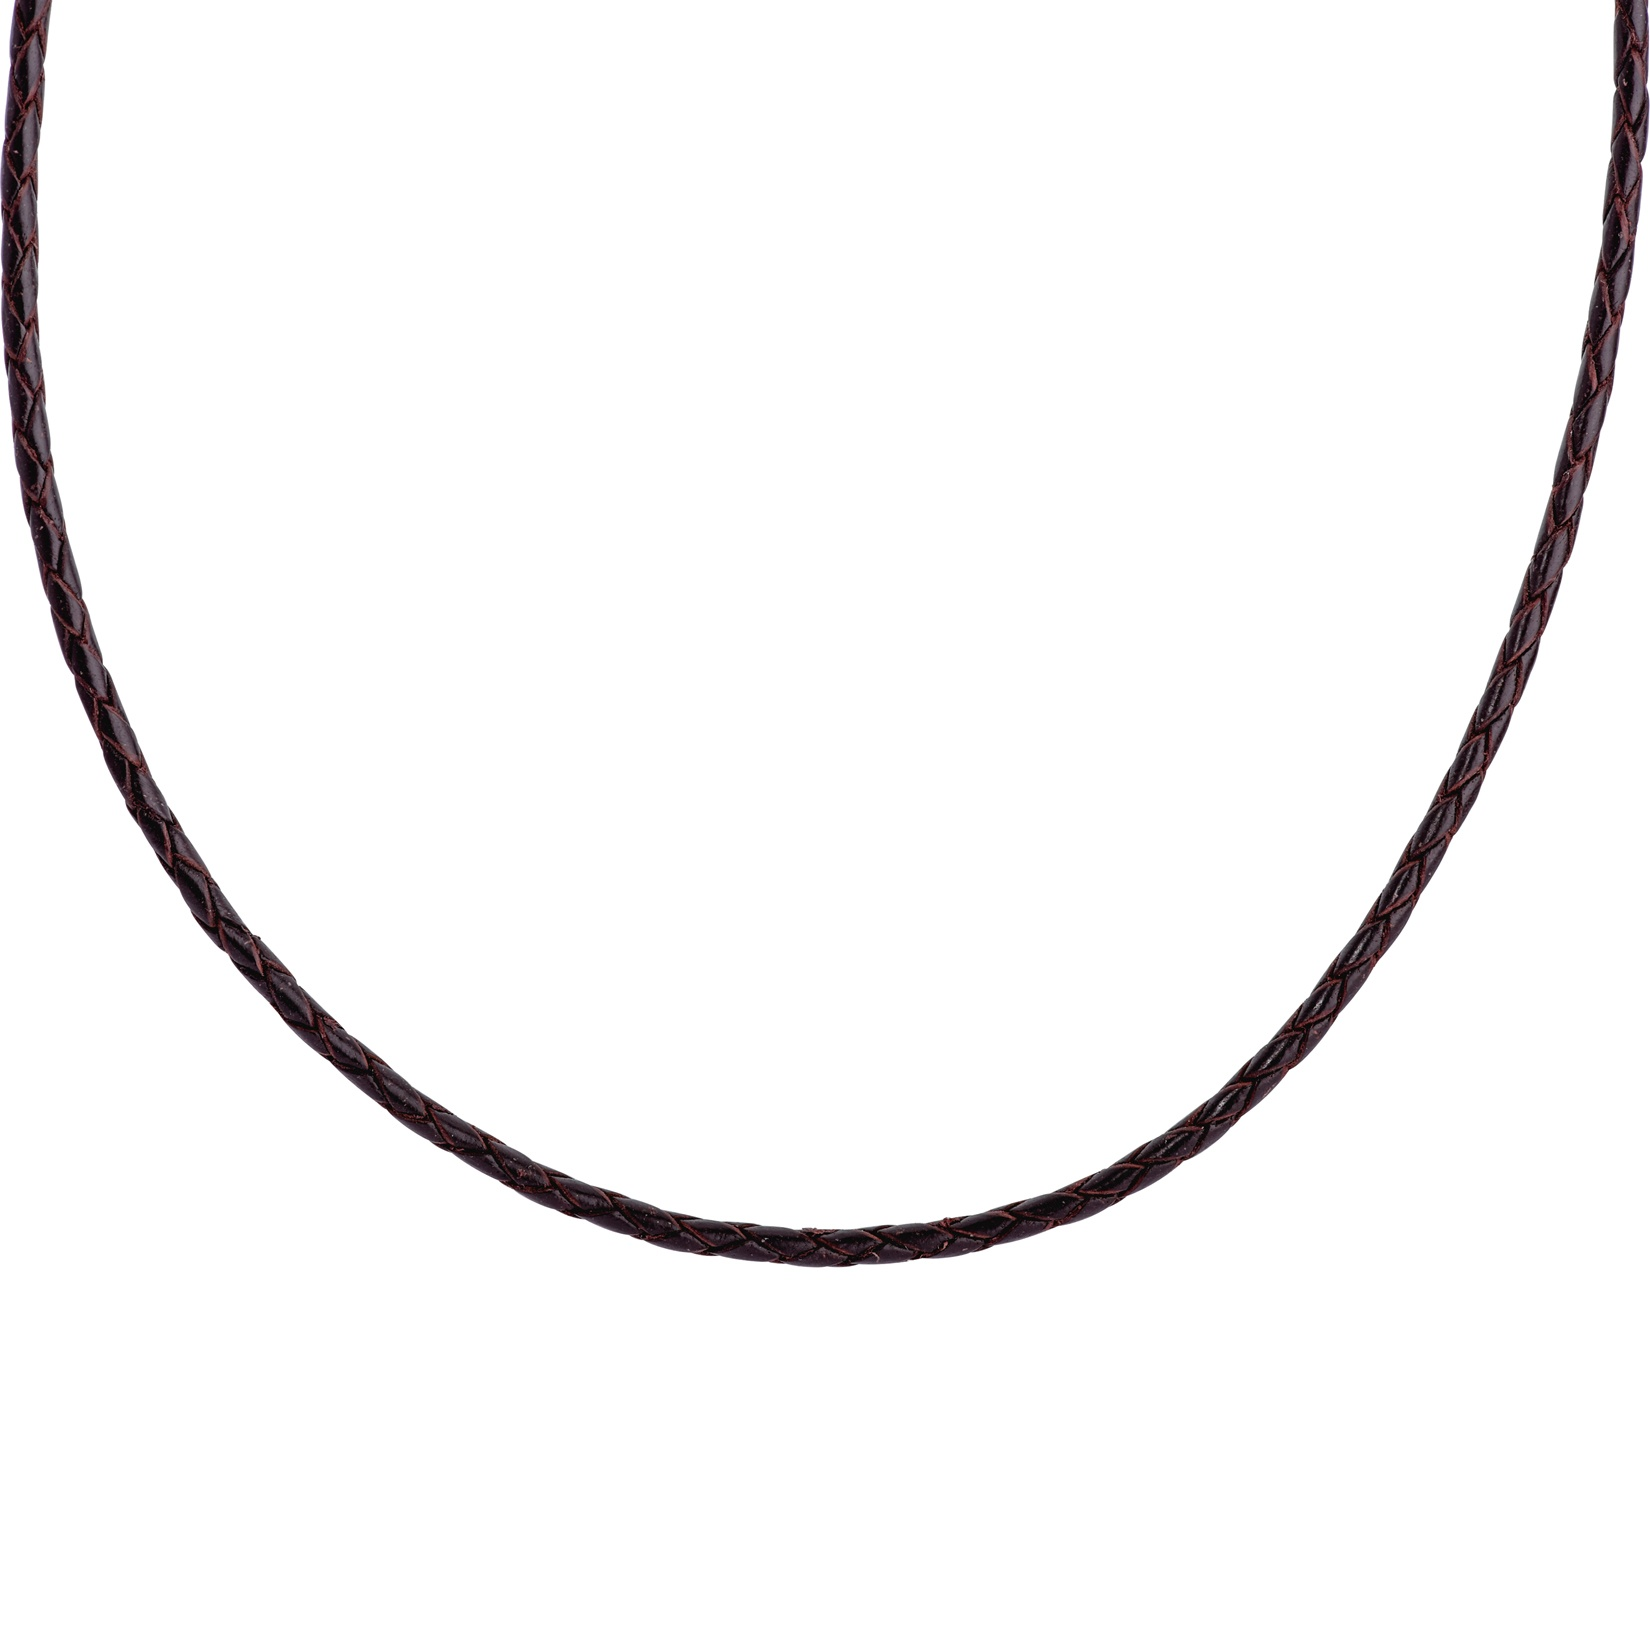 American West 17-inch Brown Leather Necklace